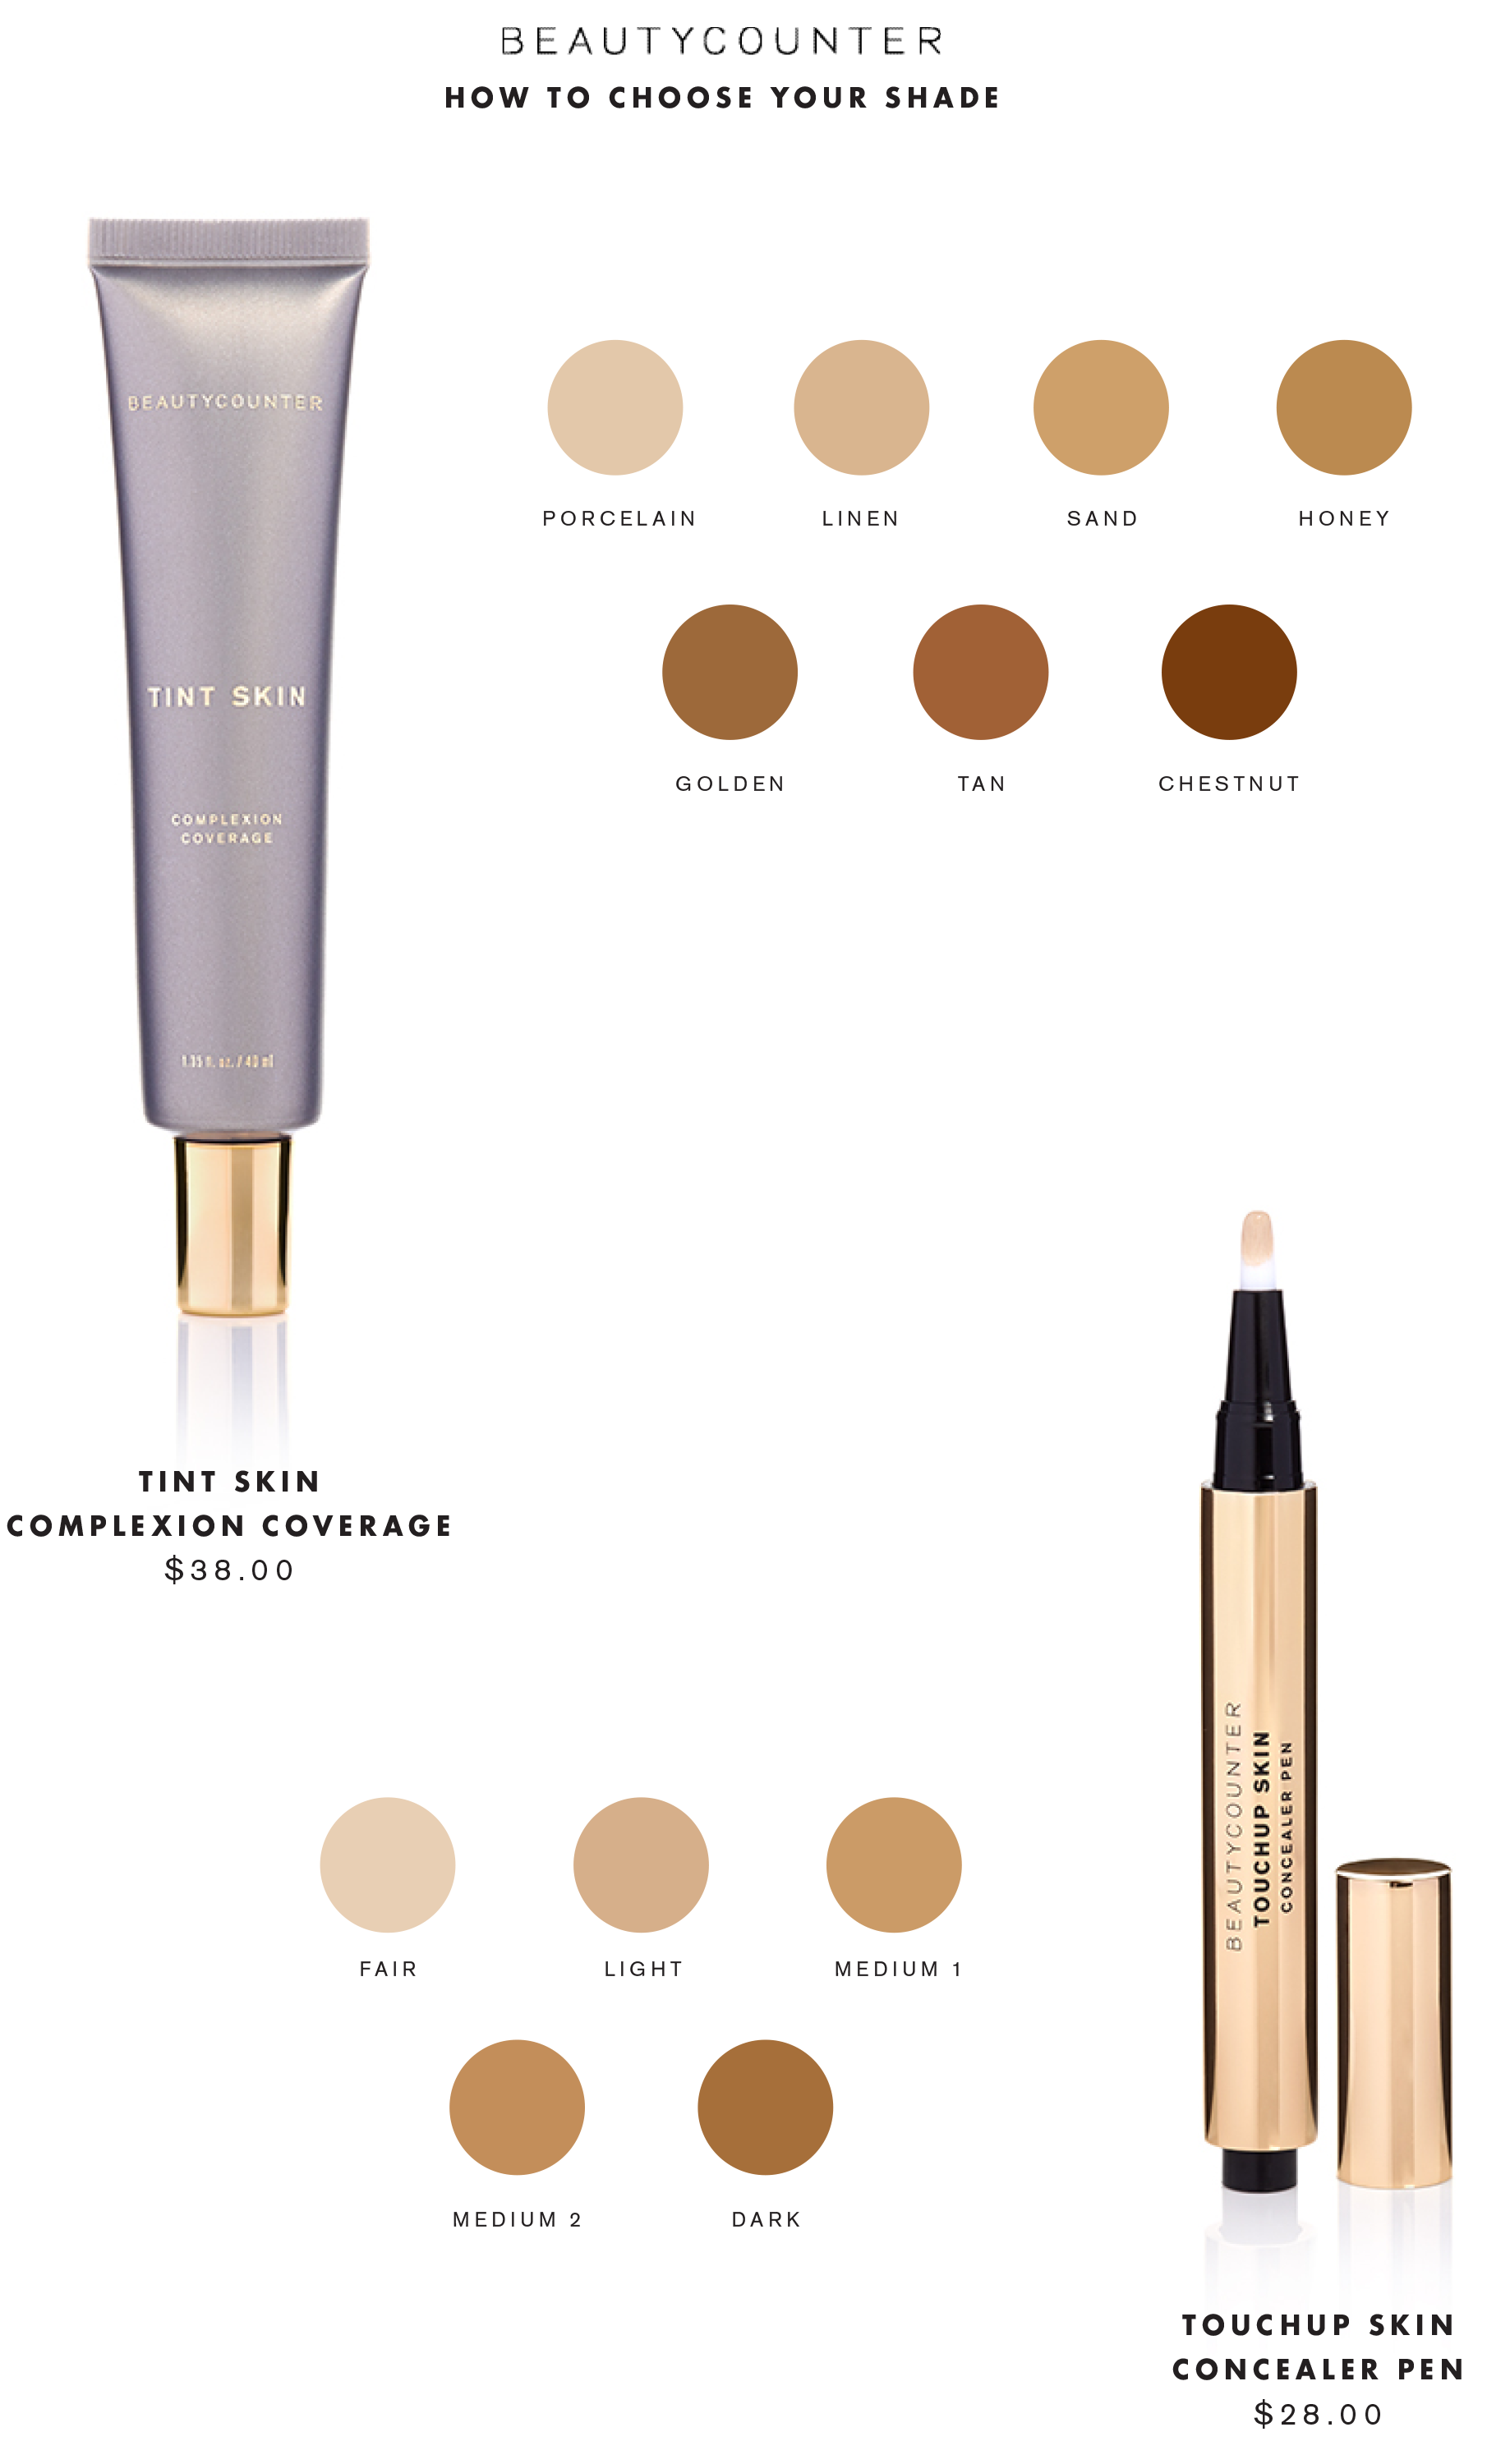 Beautycounter how to choose your shade Tint Skin ...